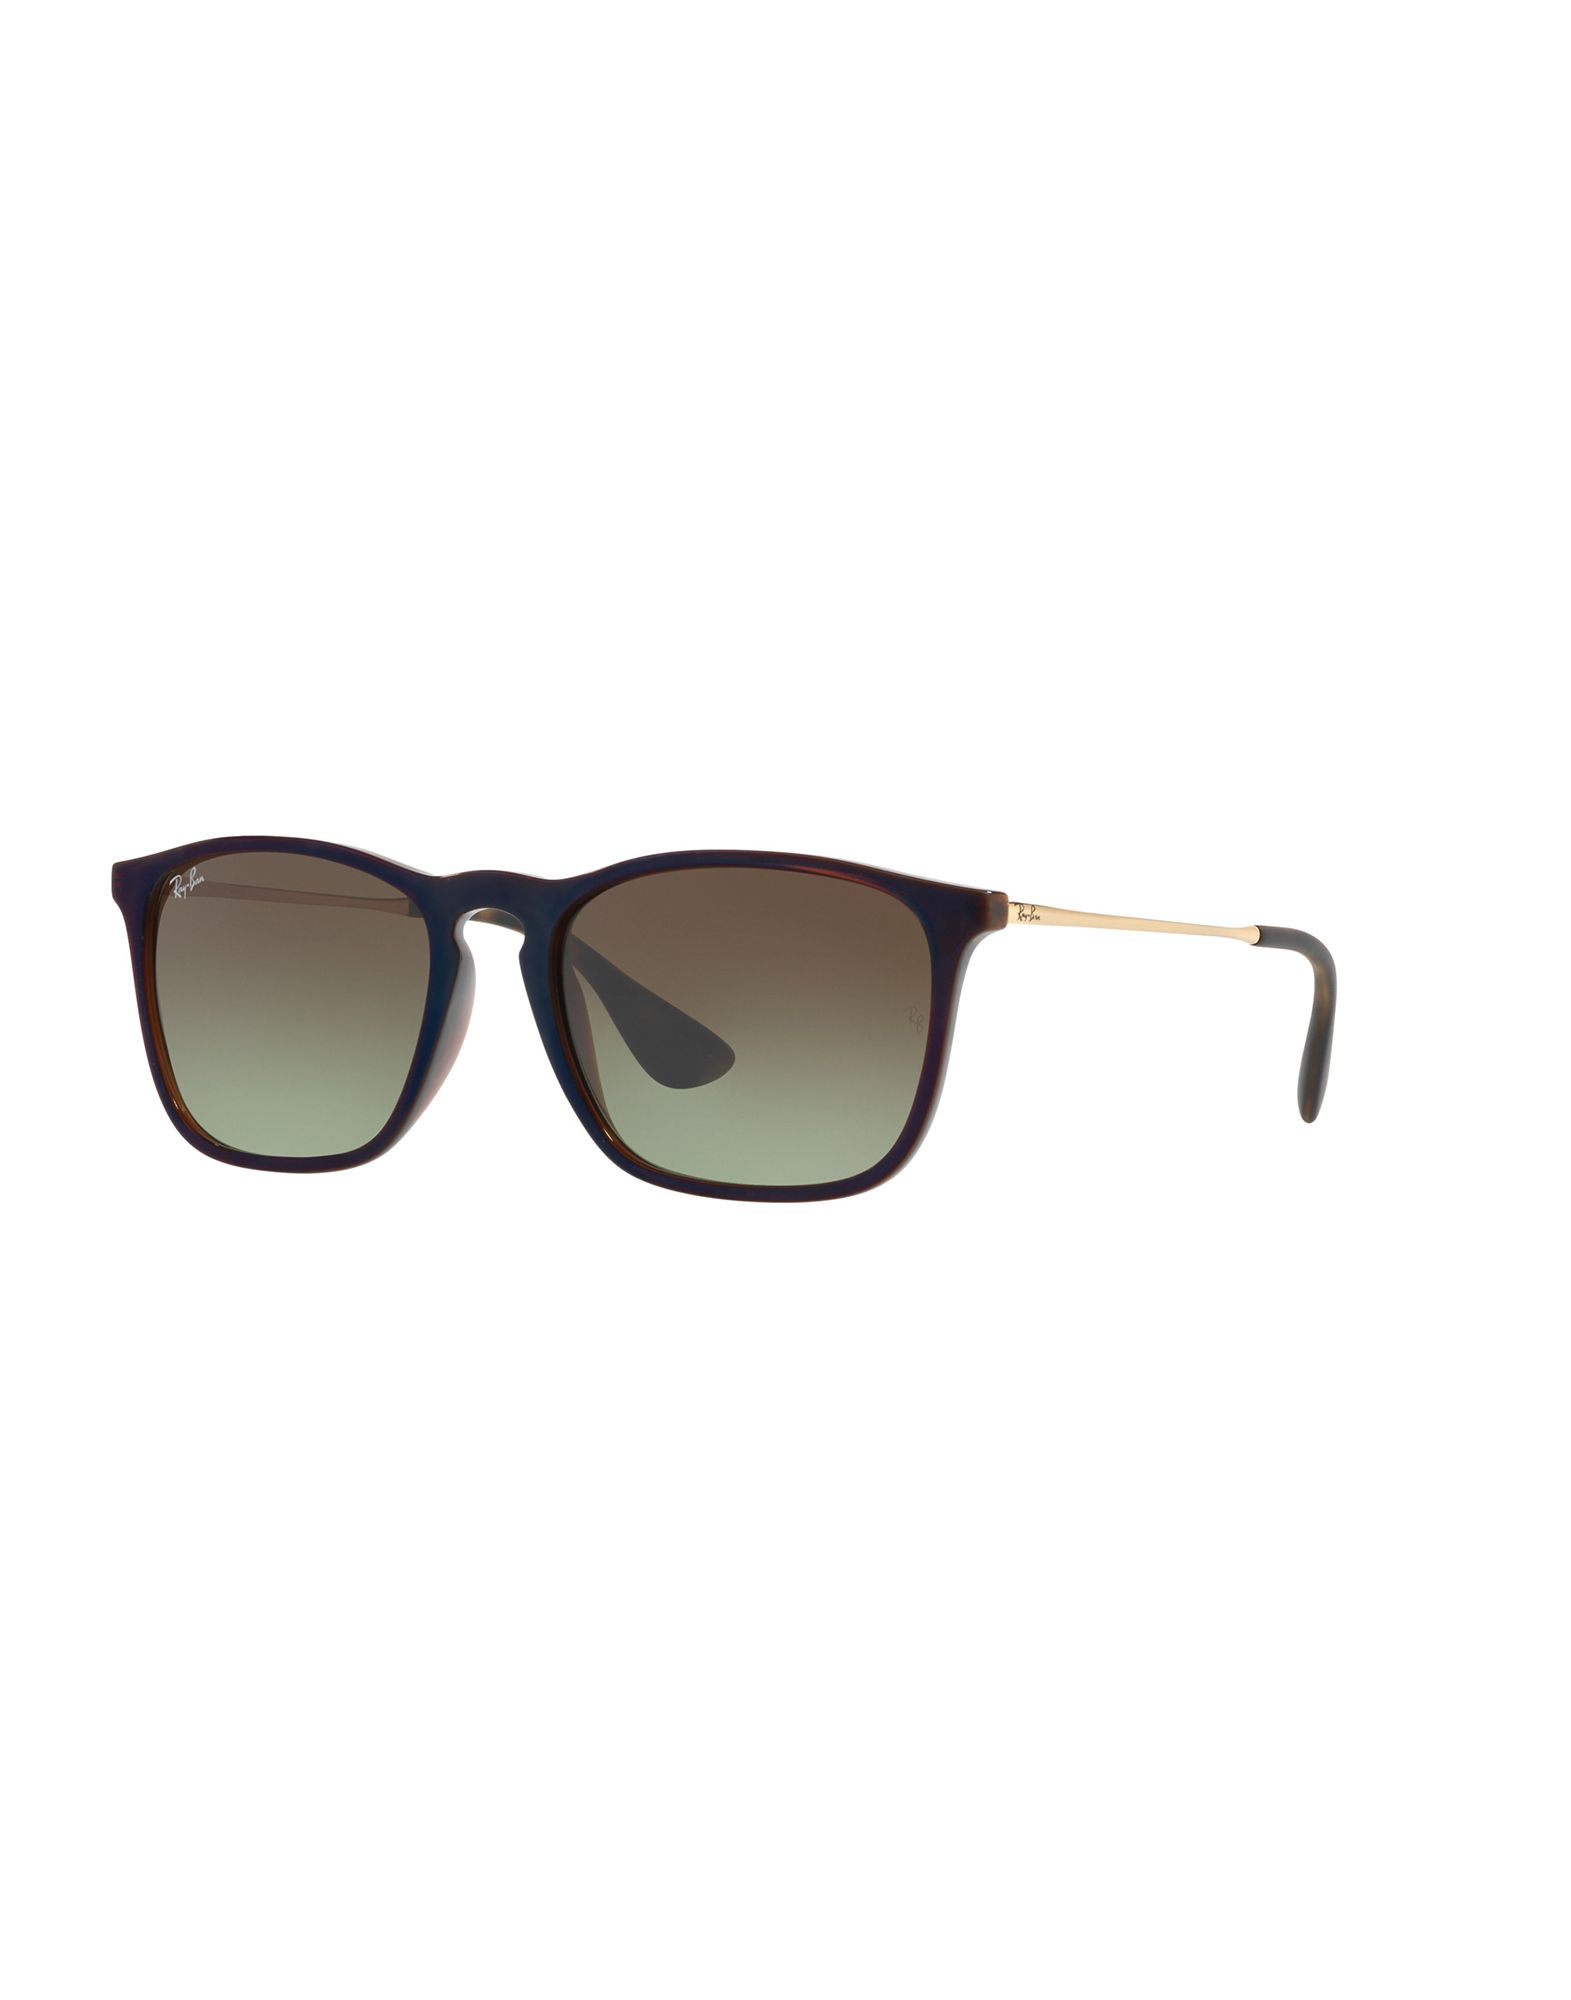 Occhiali Da Sole Ray-Ban Rb4187 Chris - Uomo - Acquista online su